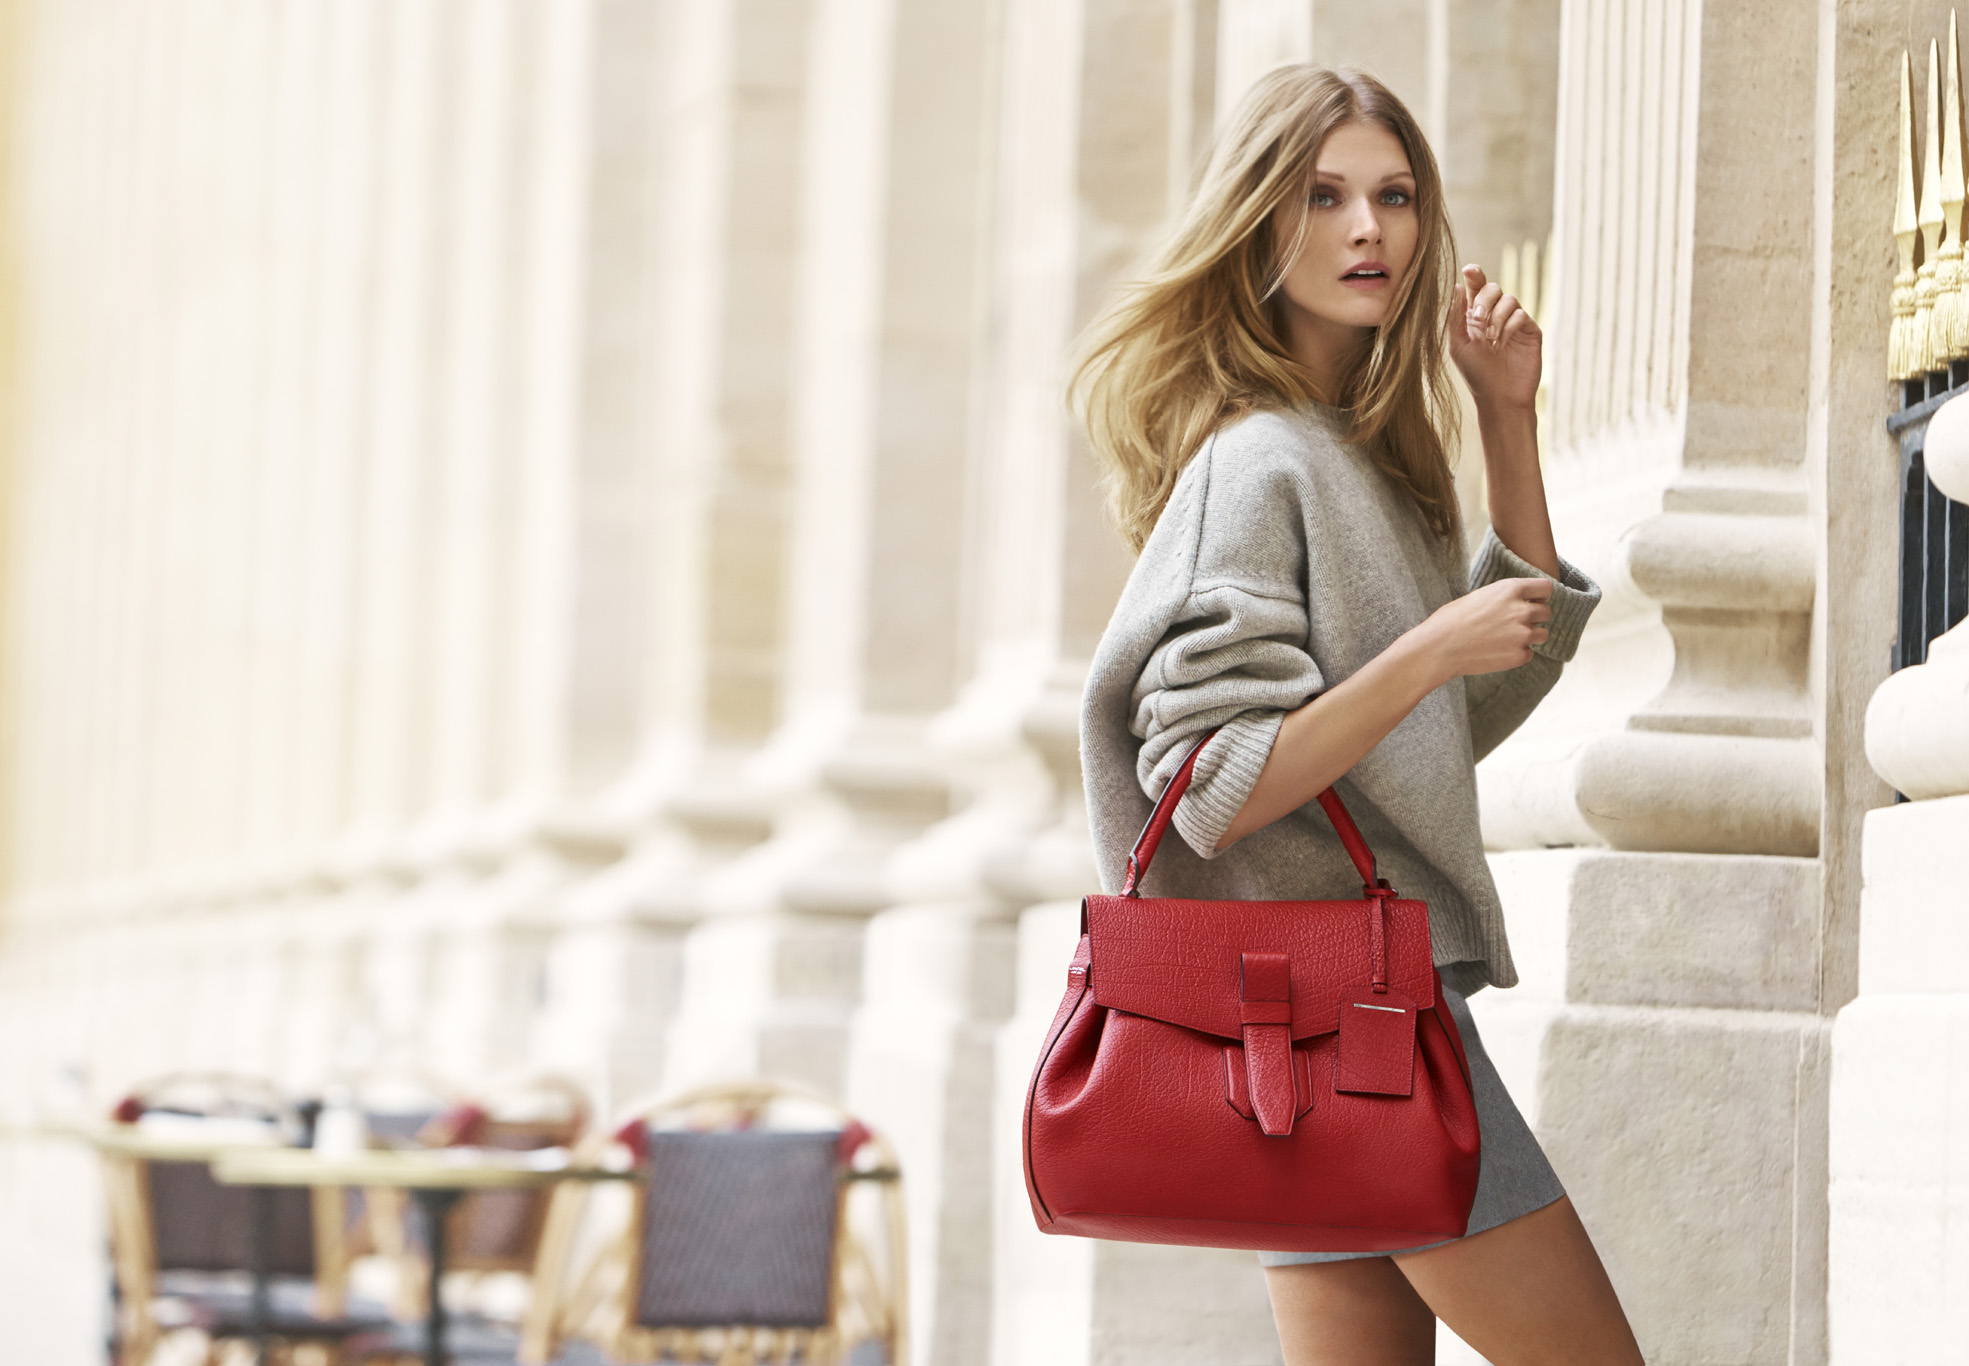 Summer Fall Fashion Handbags: You're Going to Fall for These Handbags